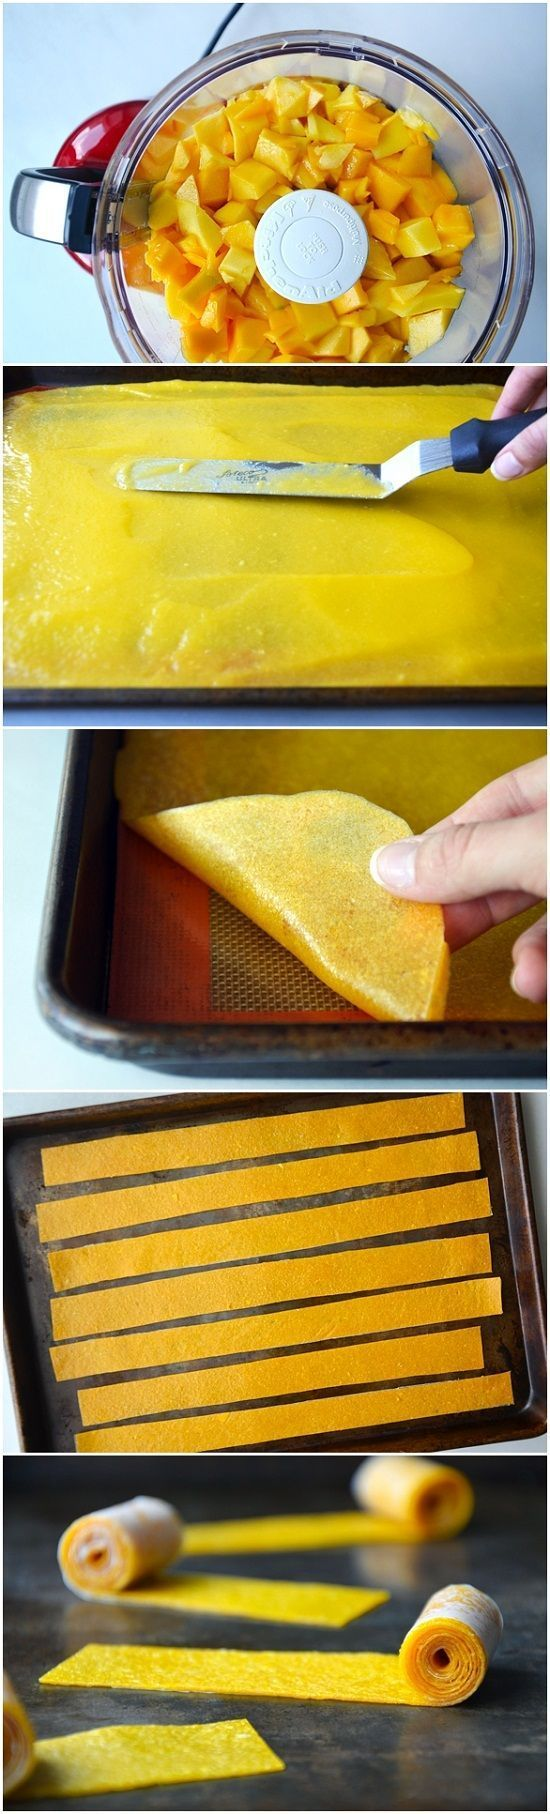 Healthy Homemade Mango Fruit Roll Ups ~ The easy and entirely natural mango fruit roll ups require only one ingredient, and they are so much tastier than the store-bought version.